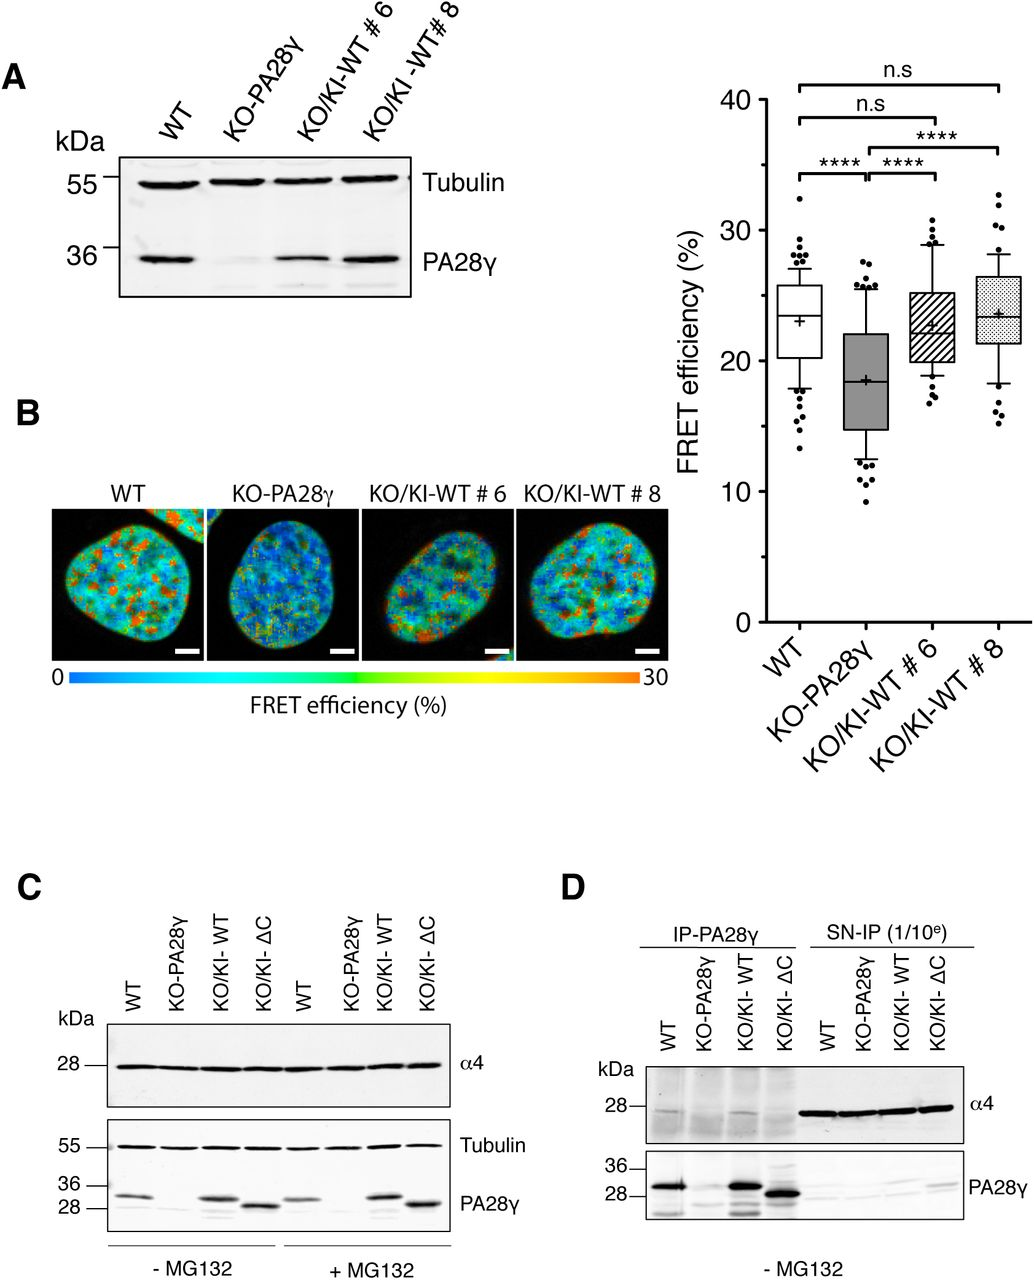 Co-localization of PA28γ with HP1α and HP1β /PA28γ co-localization is independent of PIP30, a regulator of PA28γ. A. Immunoblot of whole cell extract (30 μg) from asynchronous parental (WT) and KO-PA28γ (KO-PA28γ) U2OS cells, using anti-PA28γ. Tubulin was used as a loading control (left panel). Asynchronously-growing U2OS-KO-PA28γ cells were pre-permeabilized with 0.5 % Triton-X100 before fixation and the detection of endogenous HP1β (left panel) and PA28γ (middle panel) by indirect immunofluorescence using anti-HP1β and PA28γ antibodies. A representative merged image of HP1β (green) and PA28γ (red) is shown (right panel). Scale bars, 10 μm. B. In situ Proximity ligation assay ( is -PLA) was carried out in asynchronous U2OS cell line. Fixed cells were treated with primary antibodies directed against PA28γ (mouse monoclonal) and HP1α (rabbit polyclonal) (CTL) or with only PA28γ antibodies (w/o anti-HP1α) and DNA was stained with DAPI (left panel). A higher magnification view of a nucleus is shown. Scale bars, 10 μm. The number of PLA dots per nucleus in cells treated with both antibodies (CTL) or with only PA28γ antibodies (w/o anti-HP1α) is shown on the bar graph (right panel). Data represent the mean ± SD from 3 independent experiments, the number of cells analyzed was n = 40 and n = 41 in control cells and cells treated without primary HP1 α antibody, respectively. The p -value was determined with Student's T-test, **** ( p ≤ 0.0001). C. Whole-cell extracts (30 μg) of parental (WT), PA28γ-knockout (KO-PA28γ) and PIP30-knock-out (KO-PIP30) U2OS cells used for the is -PLA were analyzed by SDS-PAGE and immunoblotted with the antibodies indicated (left panel). Is -PLA was carried out using primary antibodies directed against HP1β and PA28γ, and DNA was stained with DAPI. Representative images of parental (WT) and KO-PIP30 U2OS cells are presented and higher magnification views are shown (middle panel). Scale bars, 10 μm. Quantification of PLA-dots was performed as in 